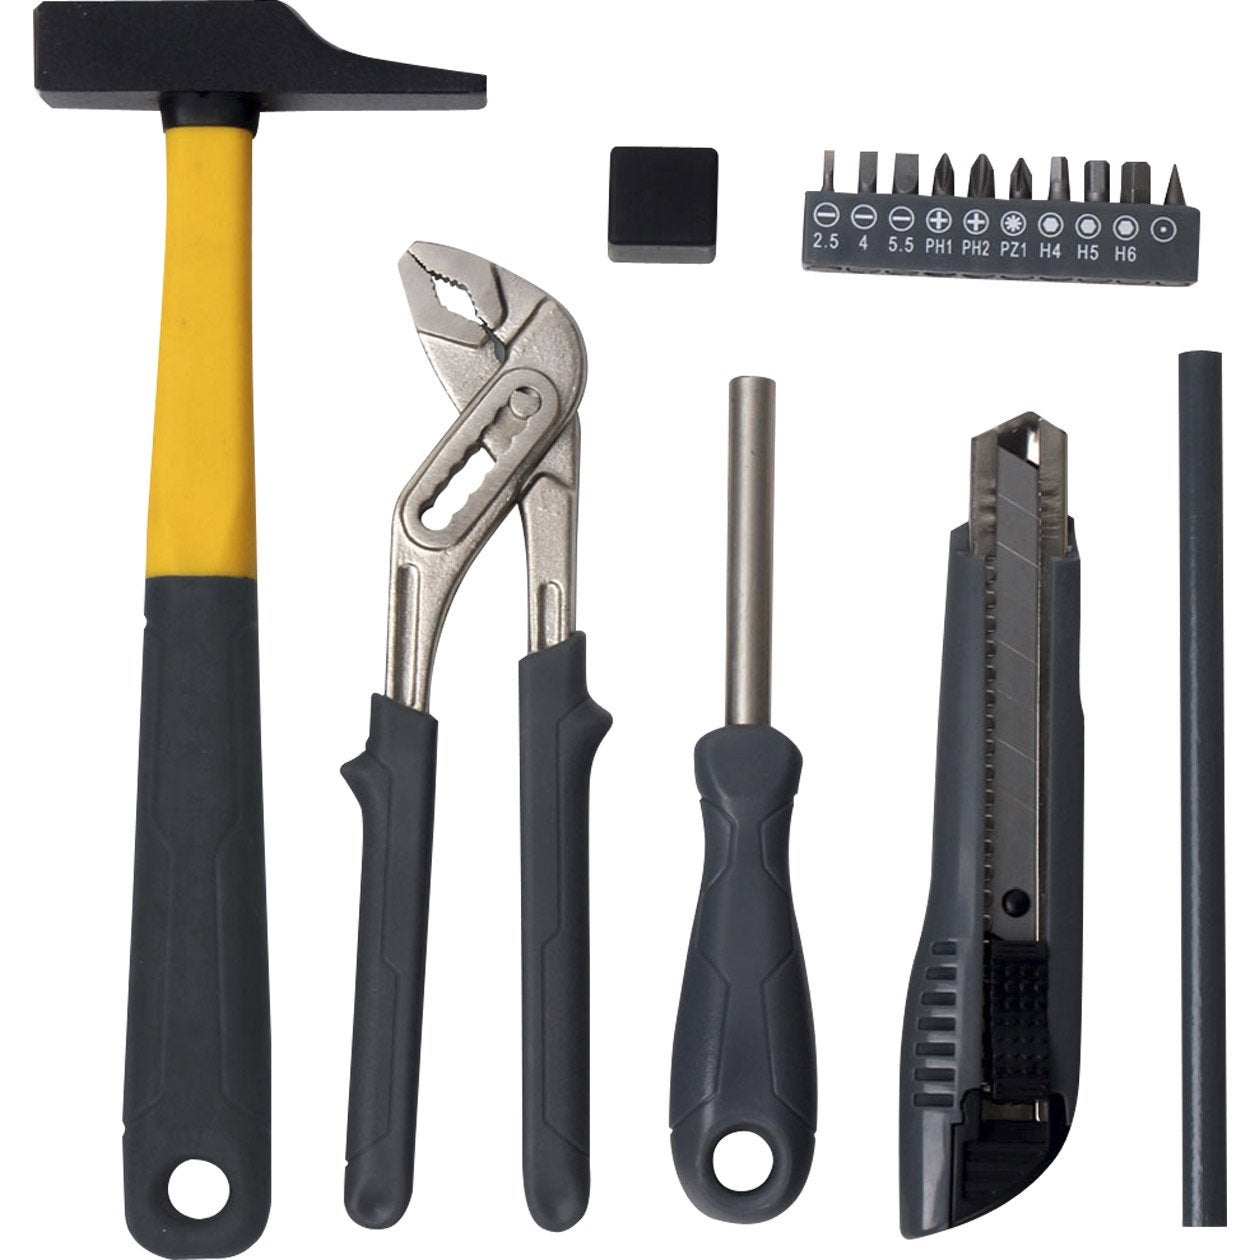 Bo te outils starter 16 pi ces leroy merlin - Liste outils bricolage ...